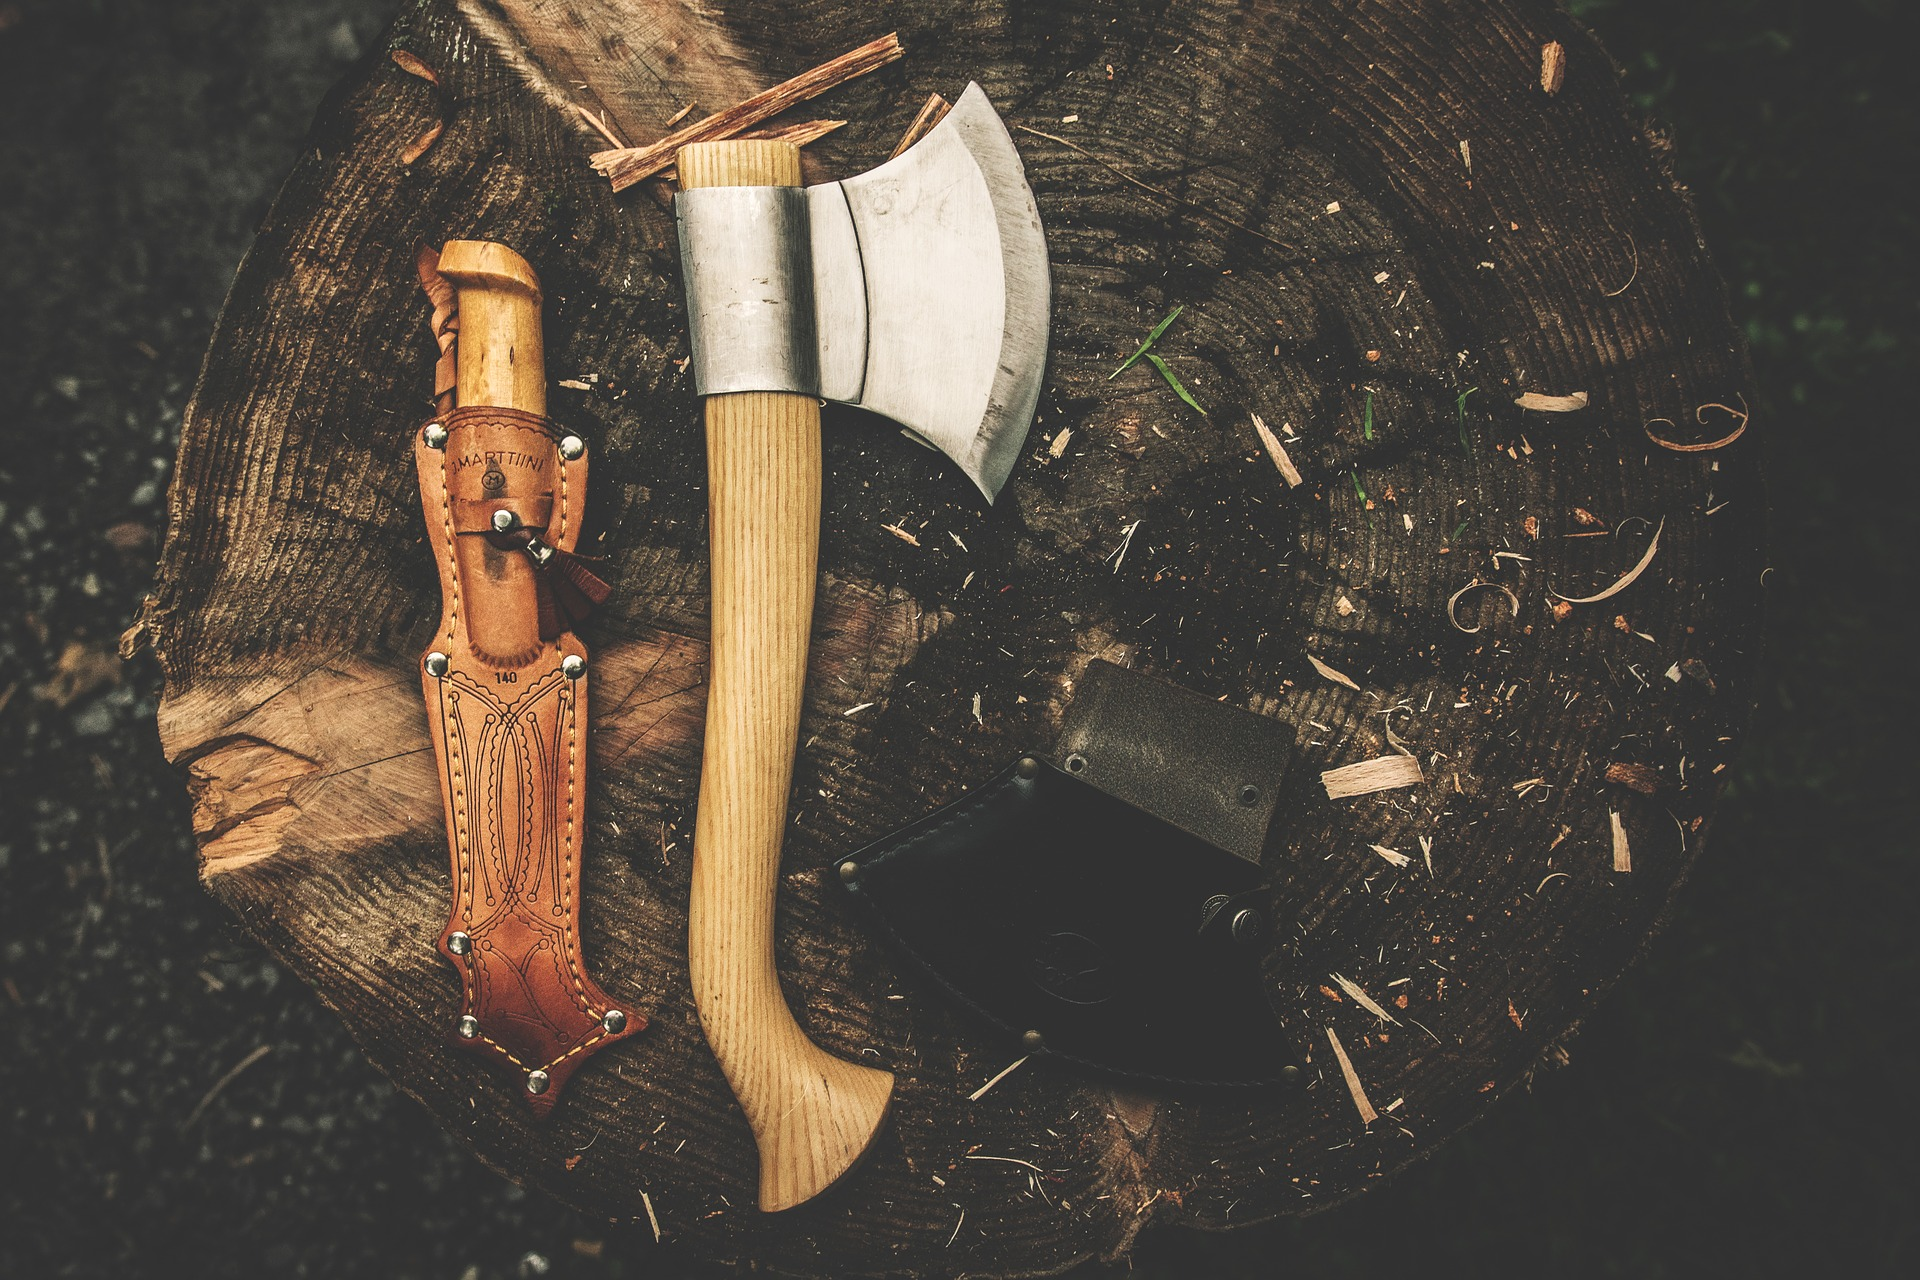 Best Survival Knife – Prepper's Guide to Choosing the Best Knife